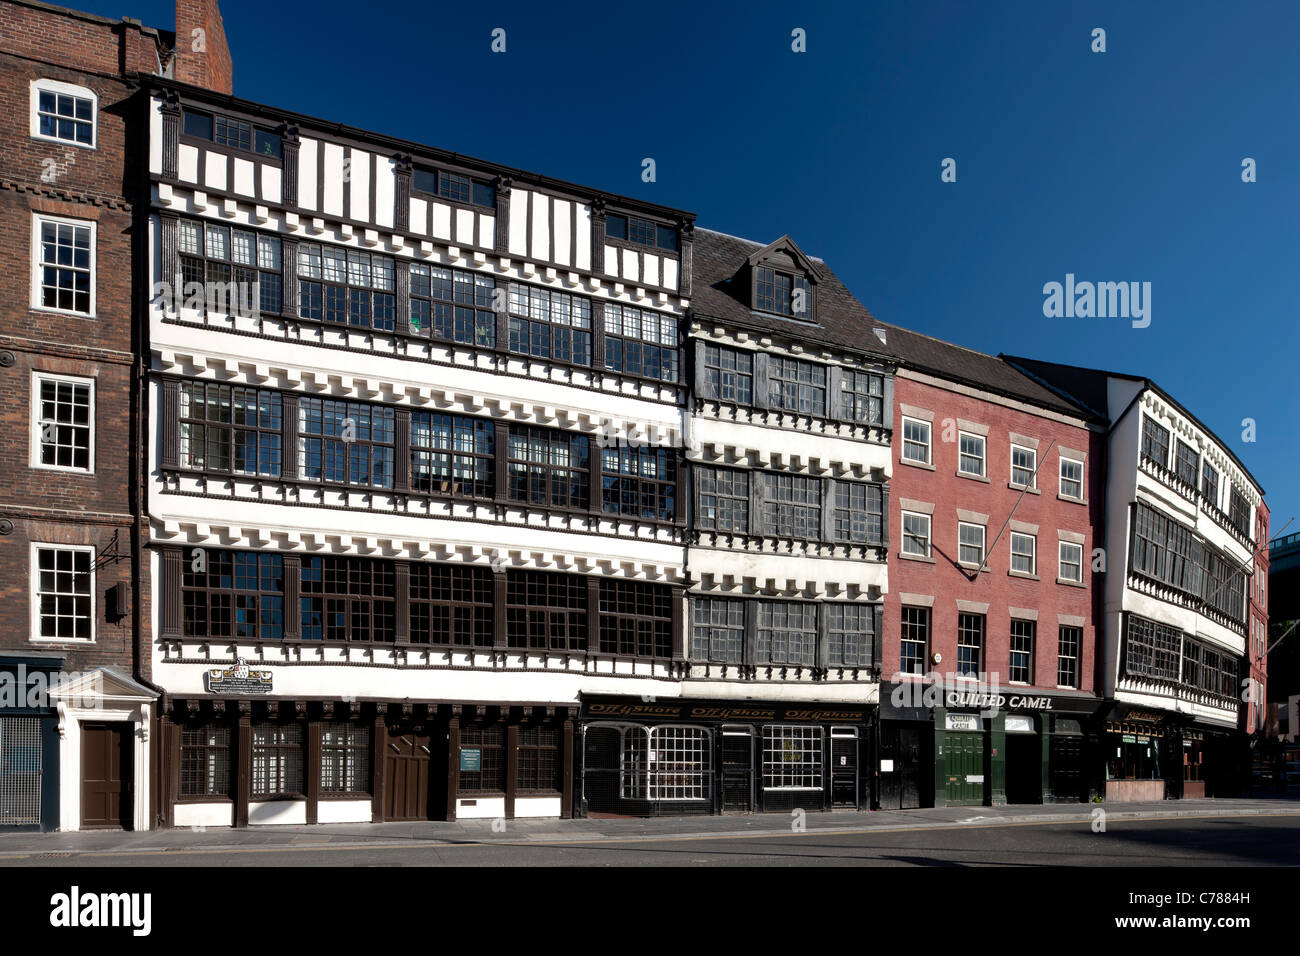 Bessie Surtees House and other merchants' houses, Sandhill, Newcastle upon Tyne - Stock Image